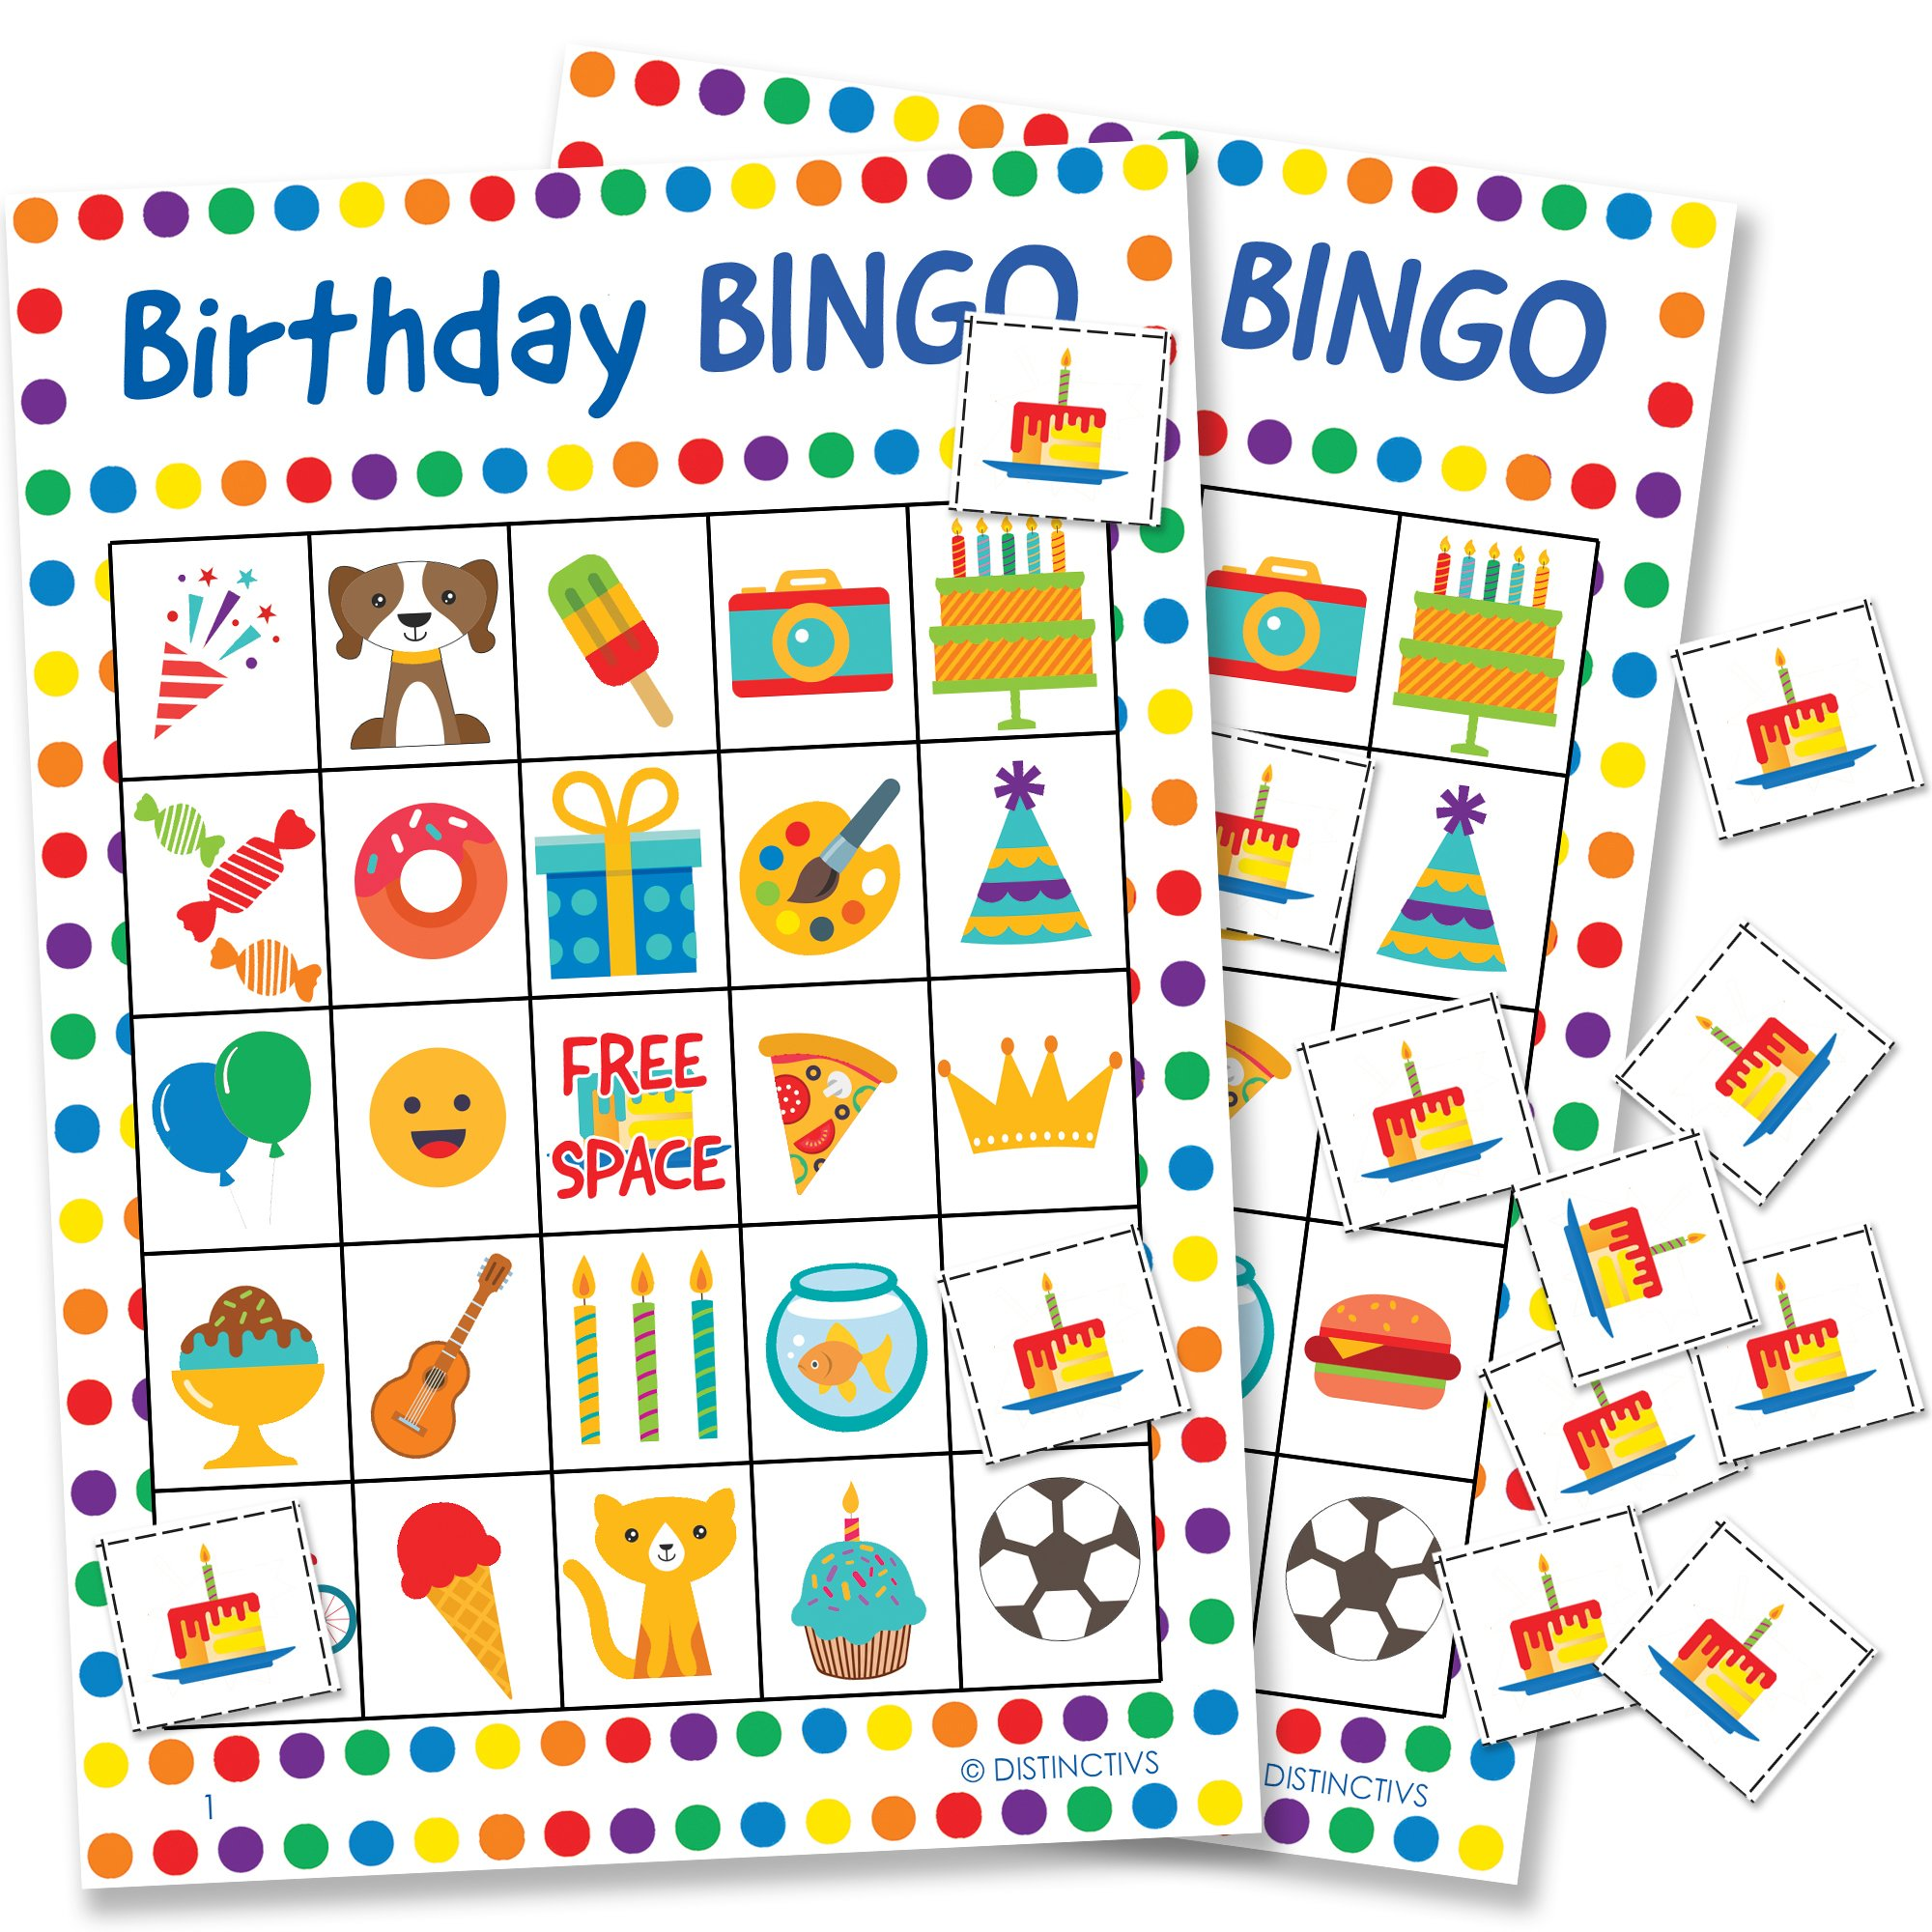 DISTINCTIVS Birthday Bingo Game for Kids - 24 Players by DISTINCTIVS